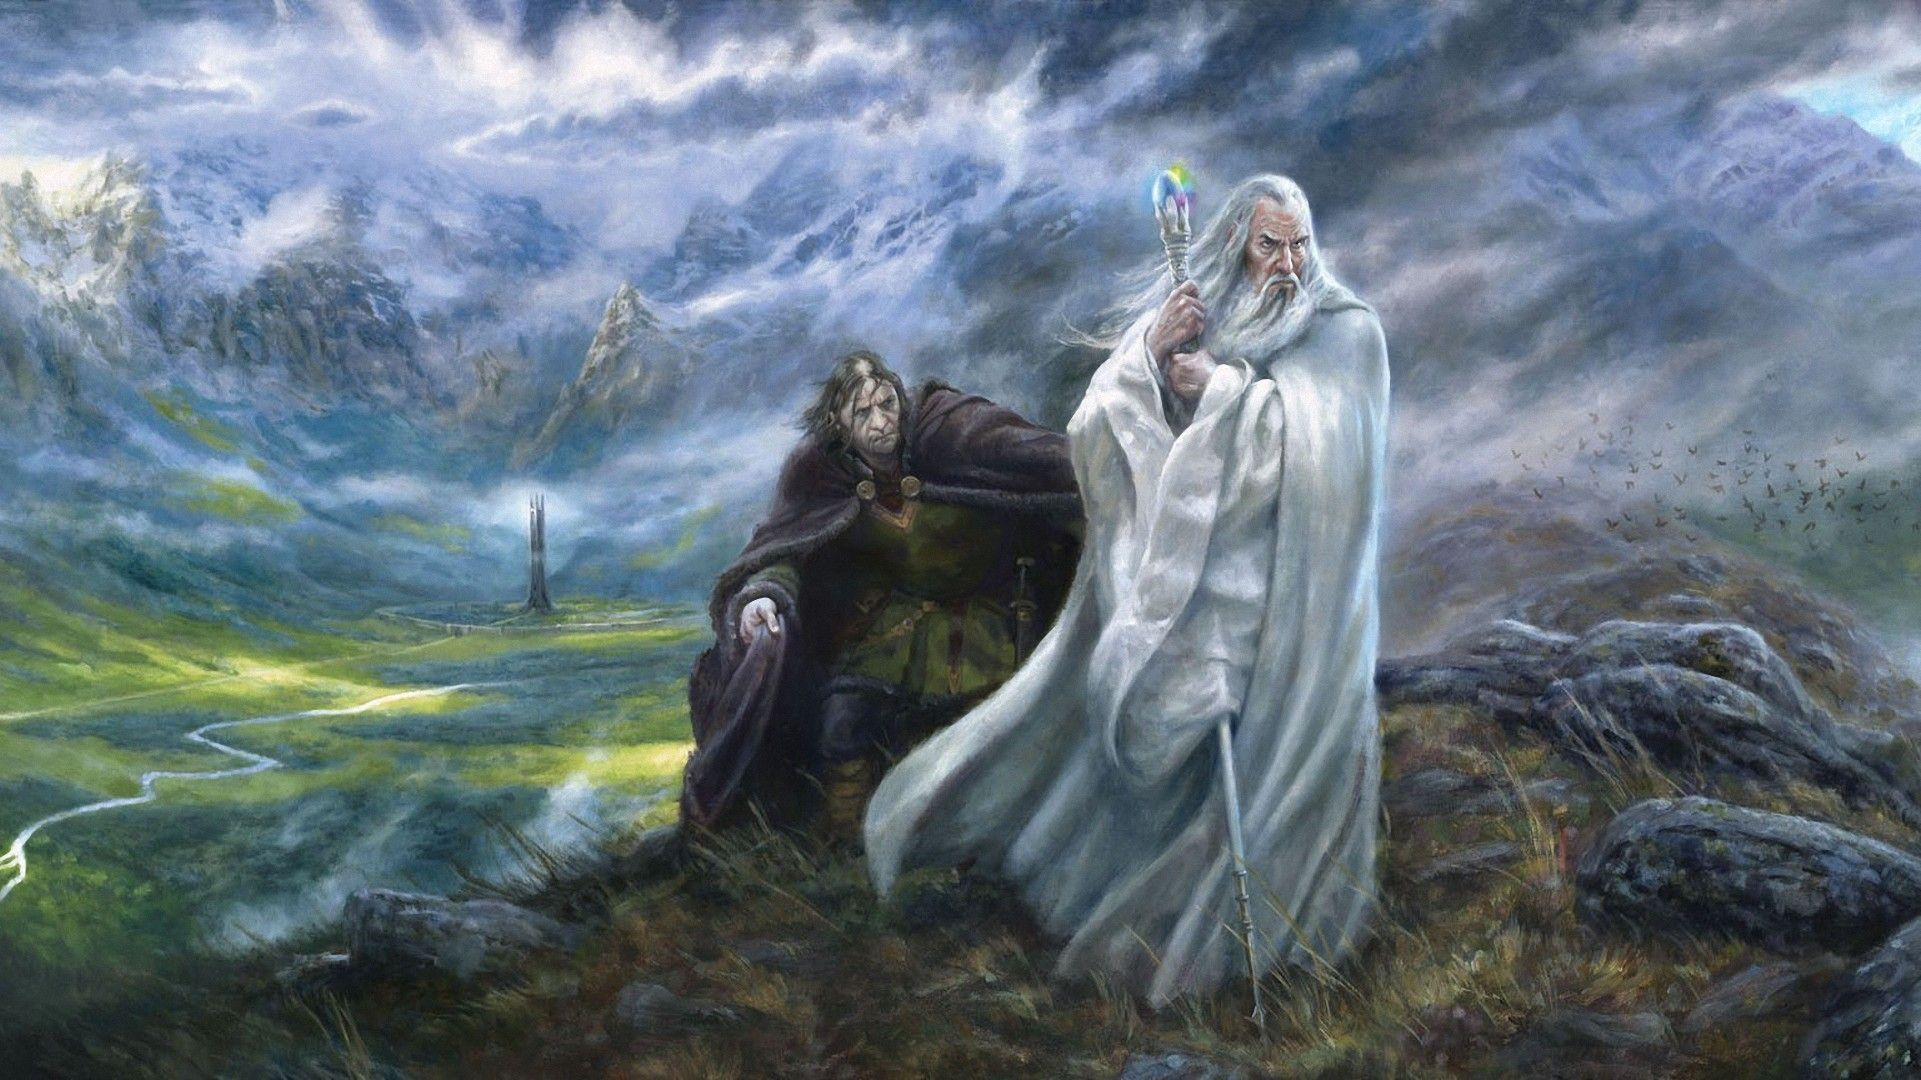 Movie The Lord Of The Rings Saruman LOTR Wallpaper